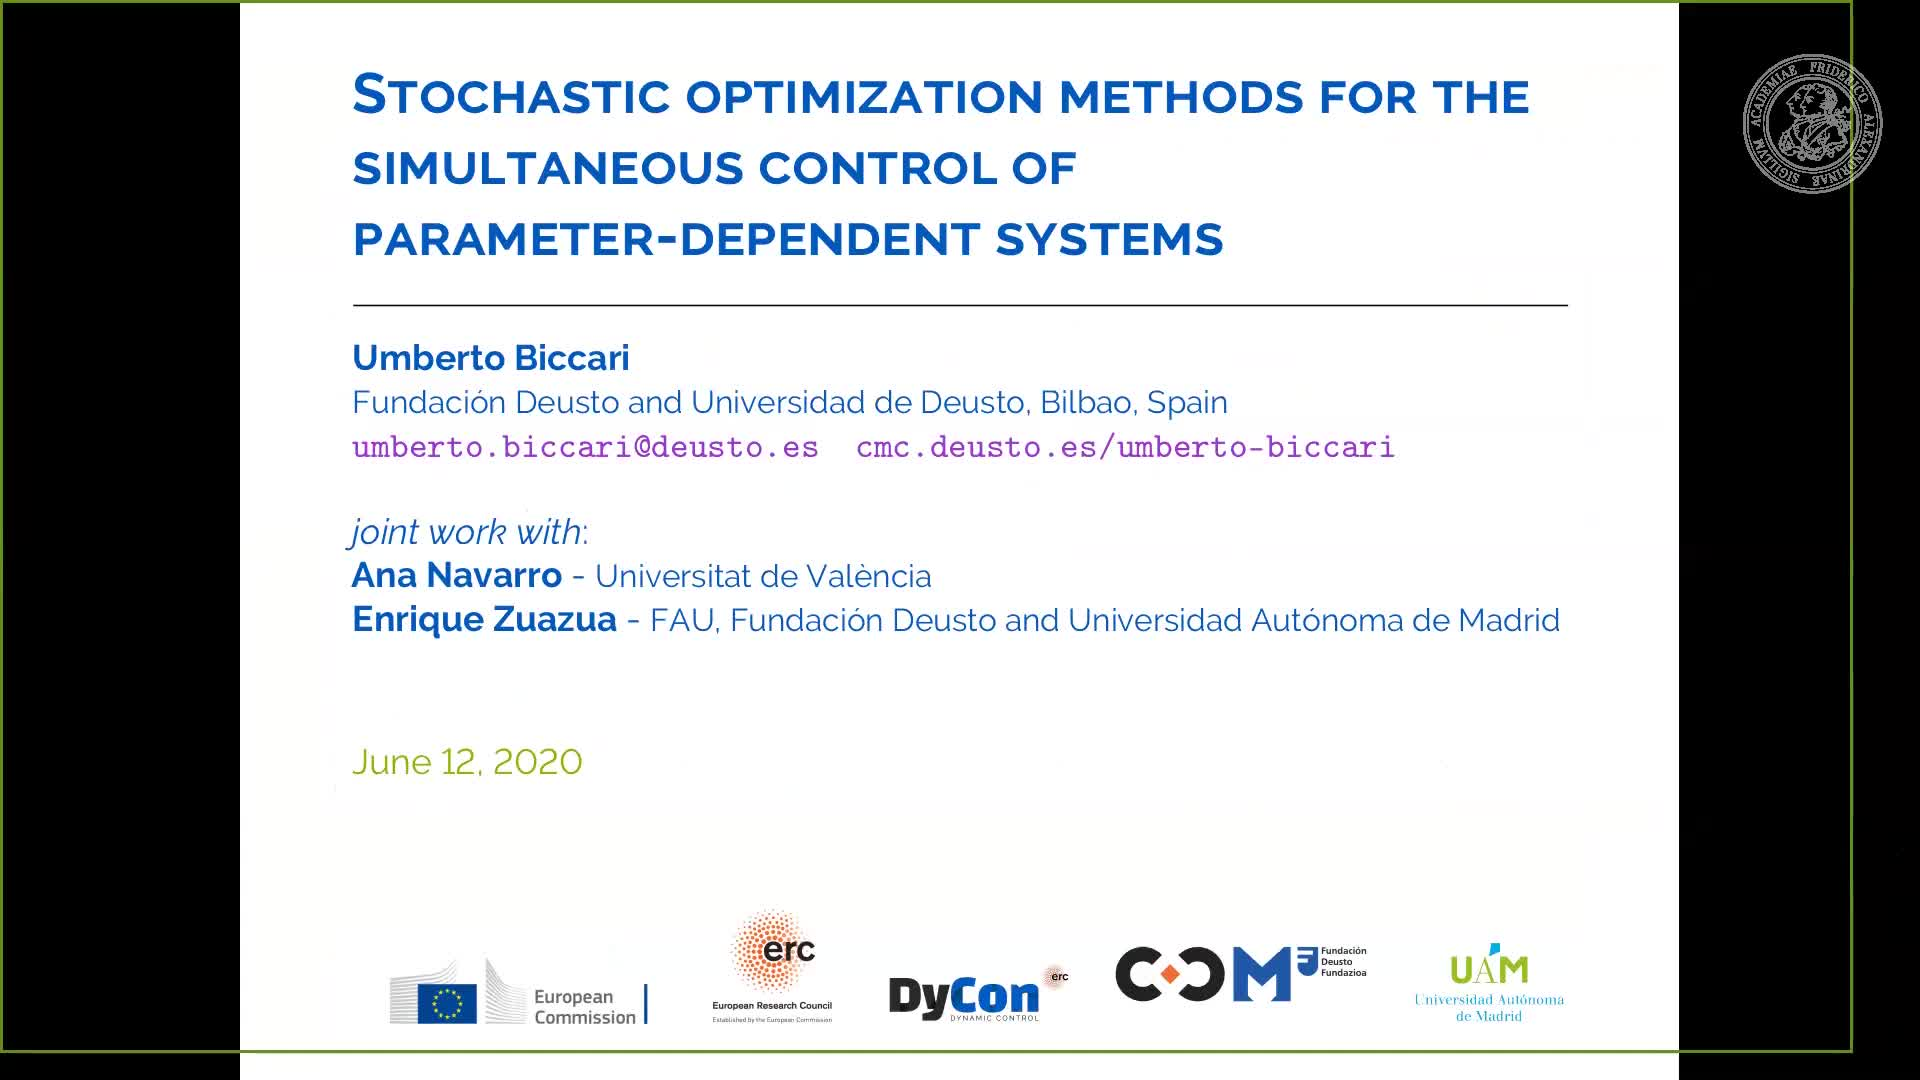 Stochastic optimization methods for the simultaneous control of parameter-dependent systems preview image